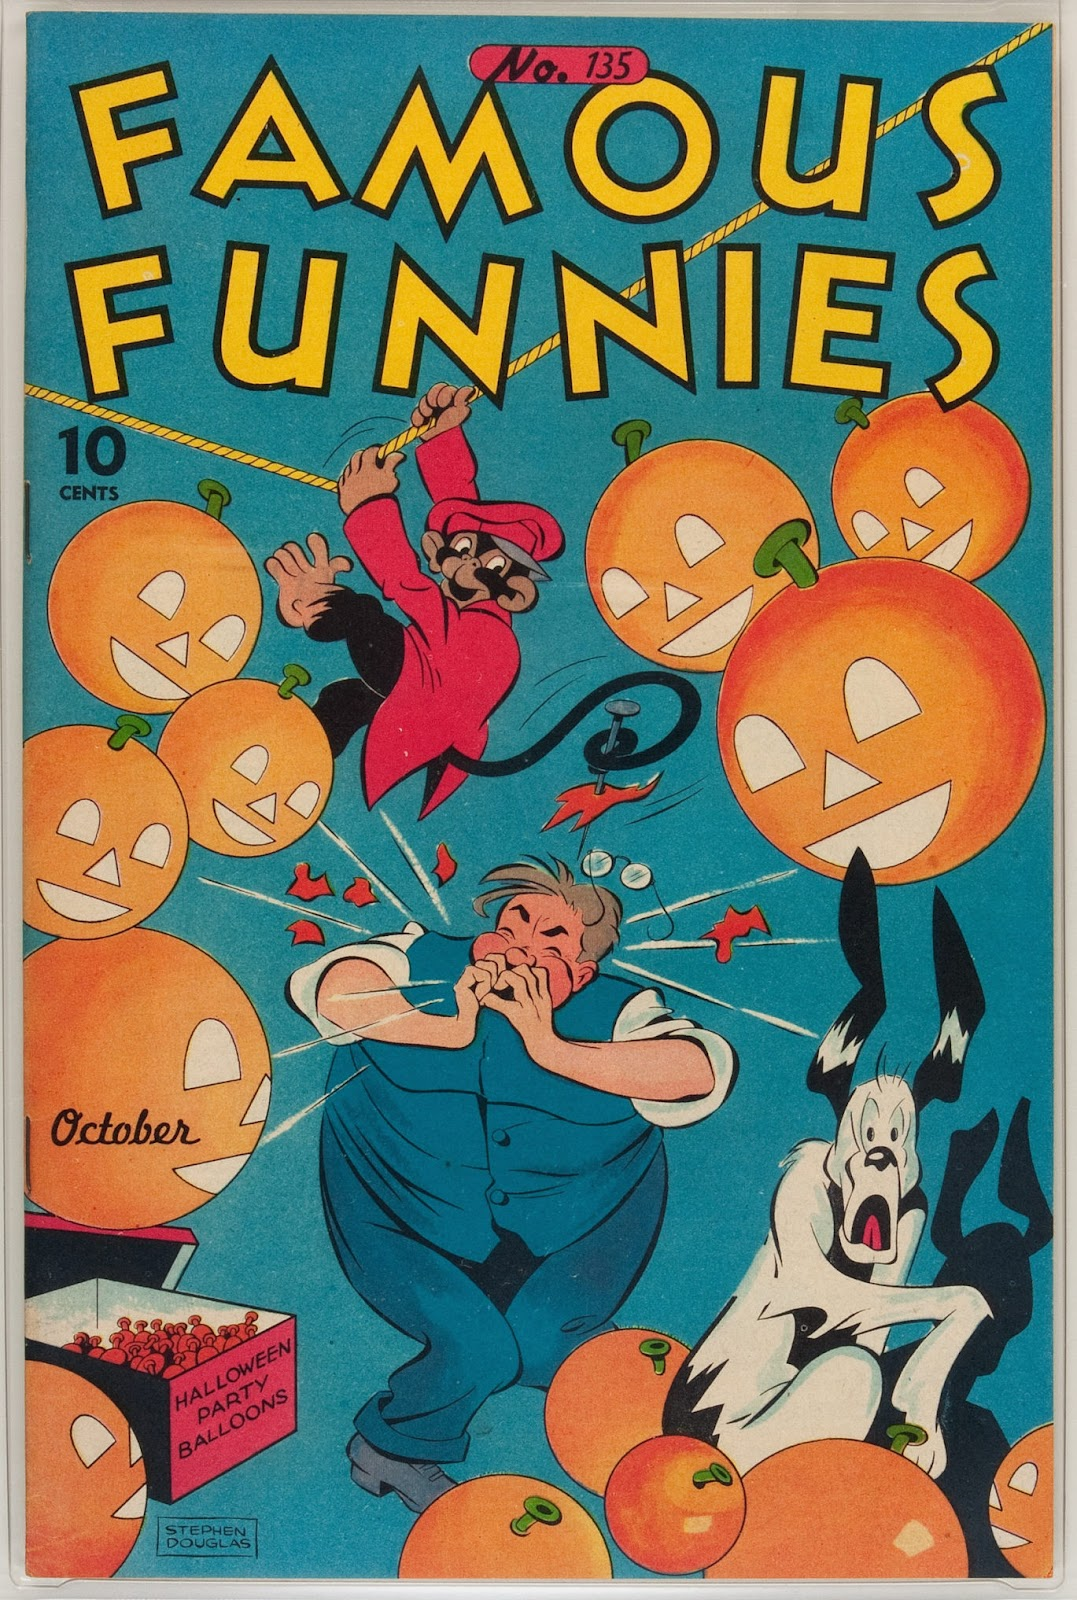 Read online Famous Funnies comic -  Issue #135 - 1